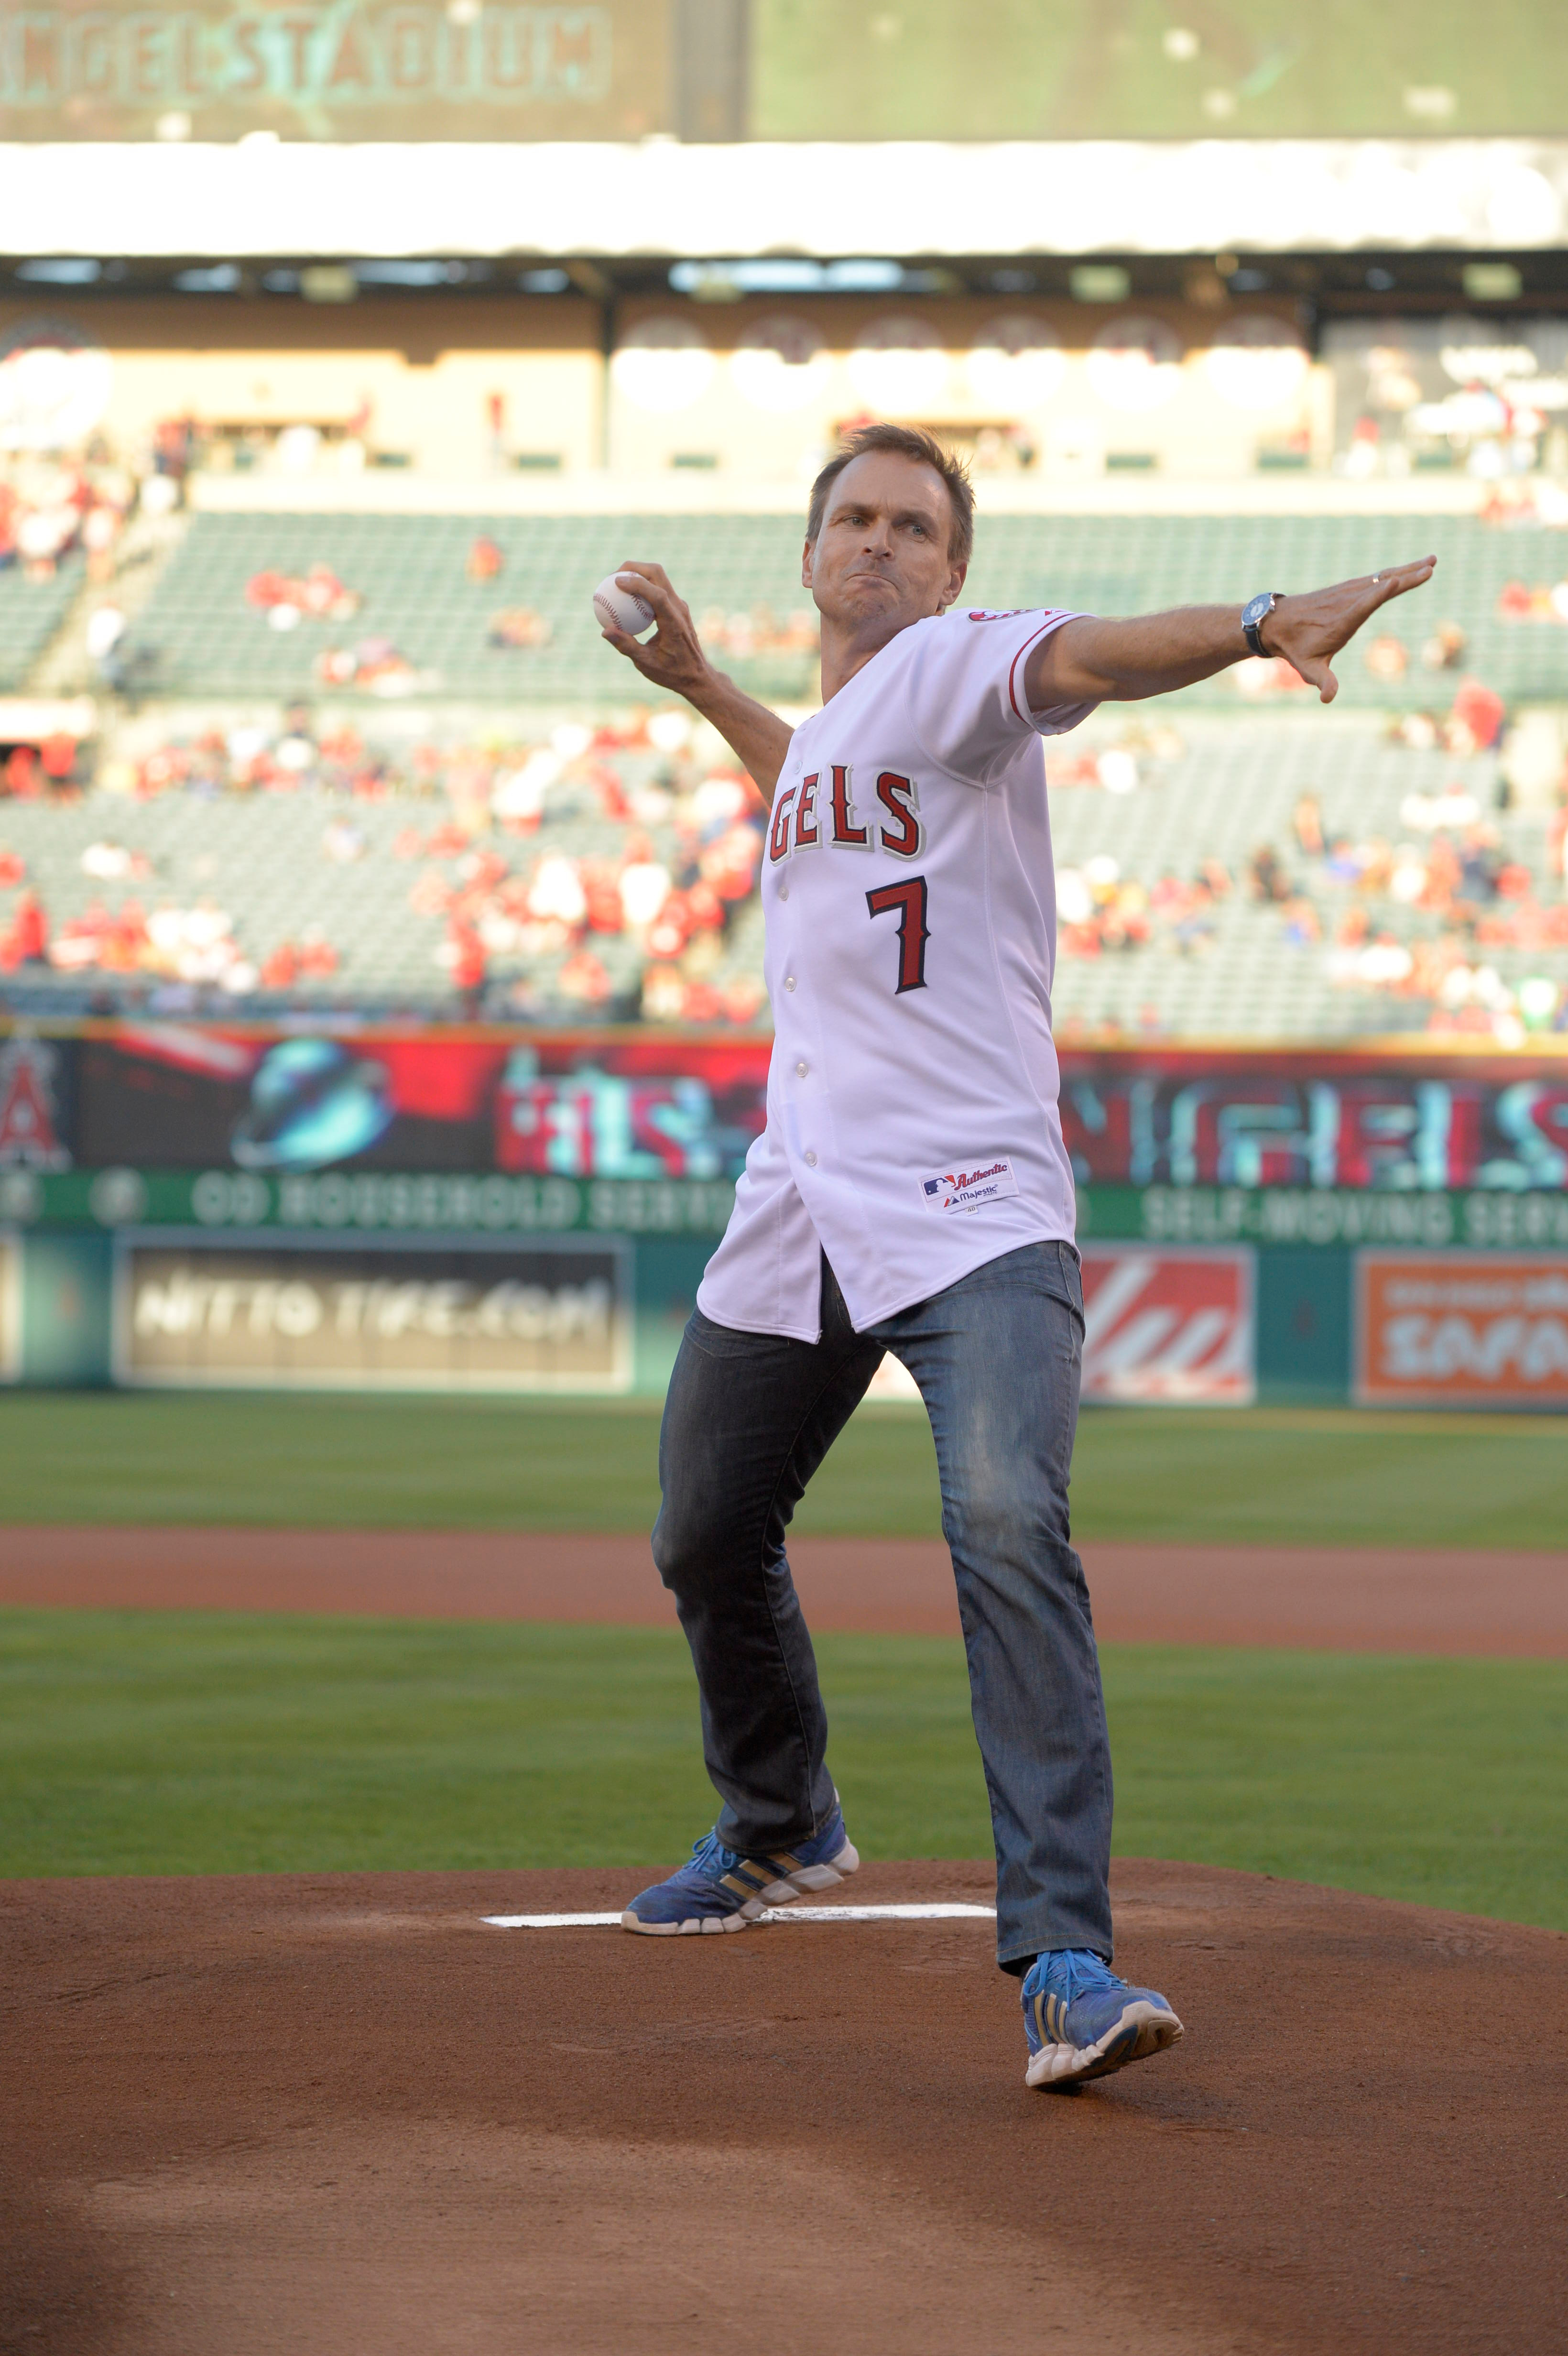 Phil throws the first pitch